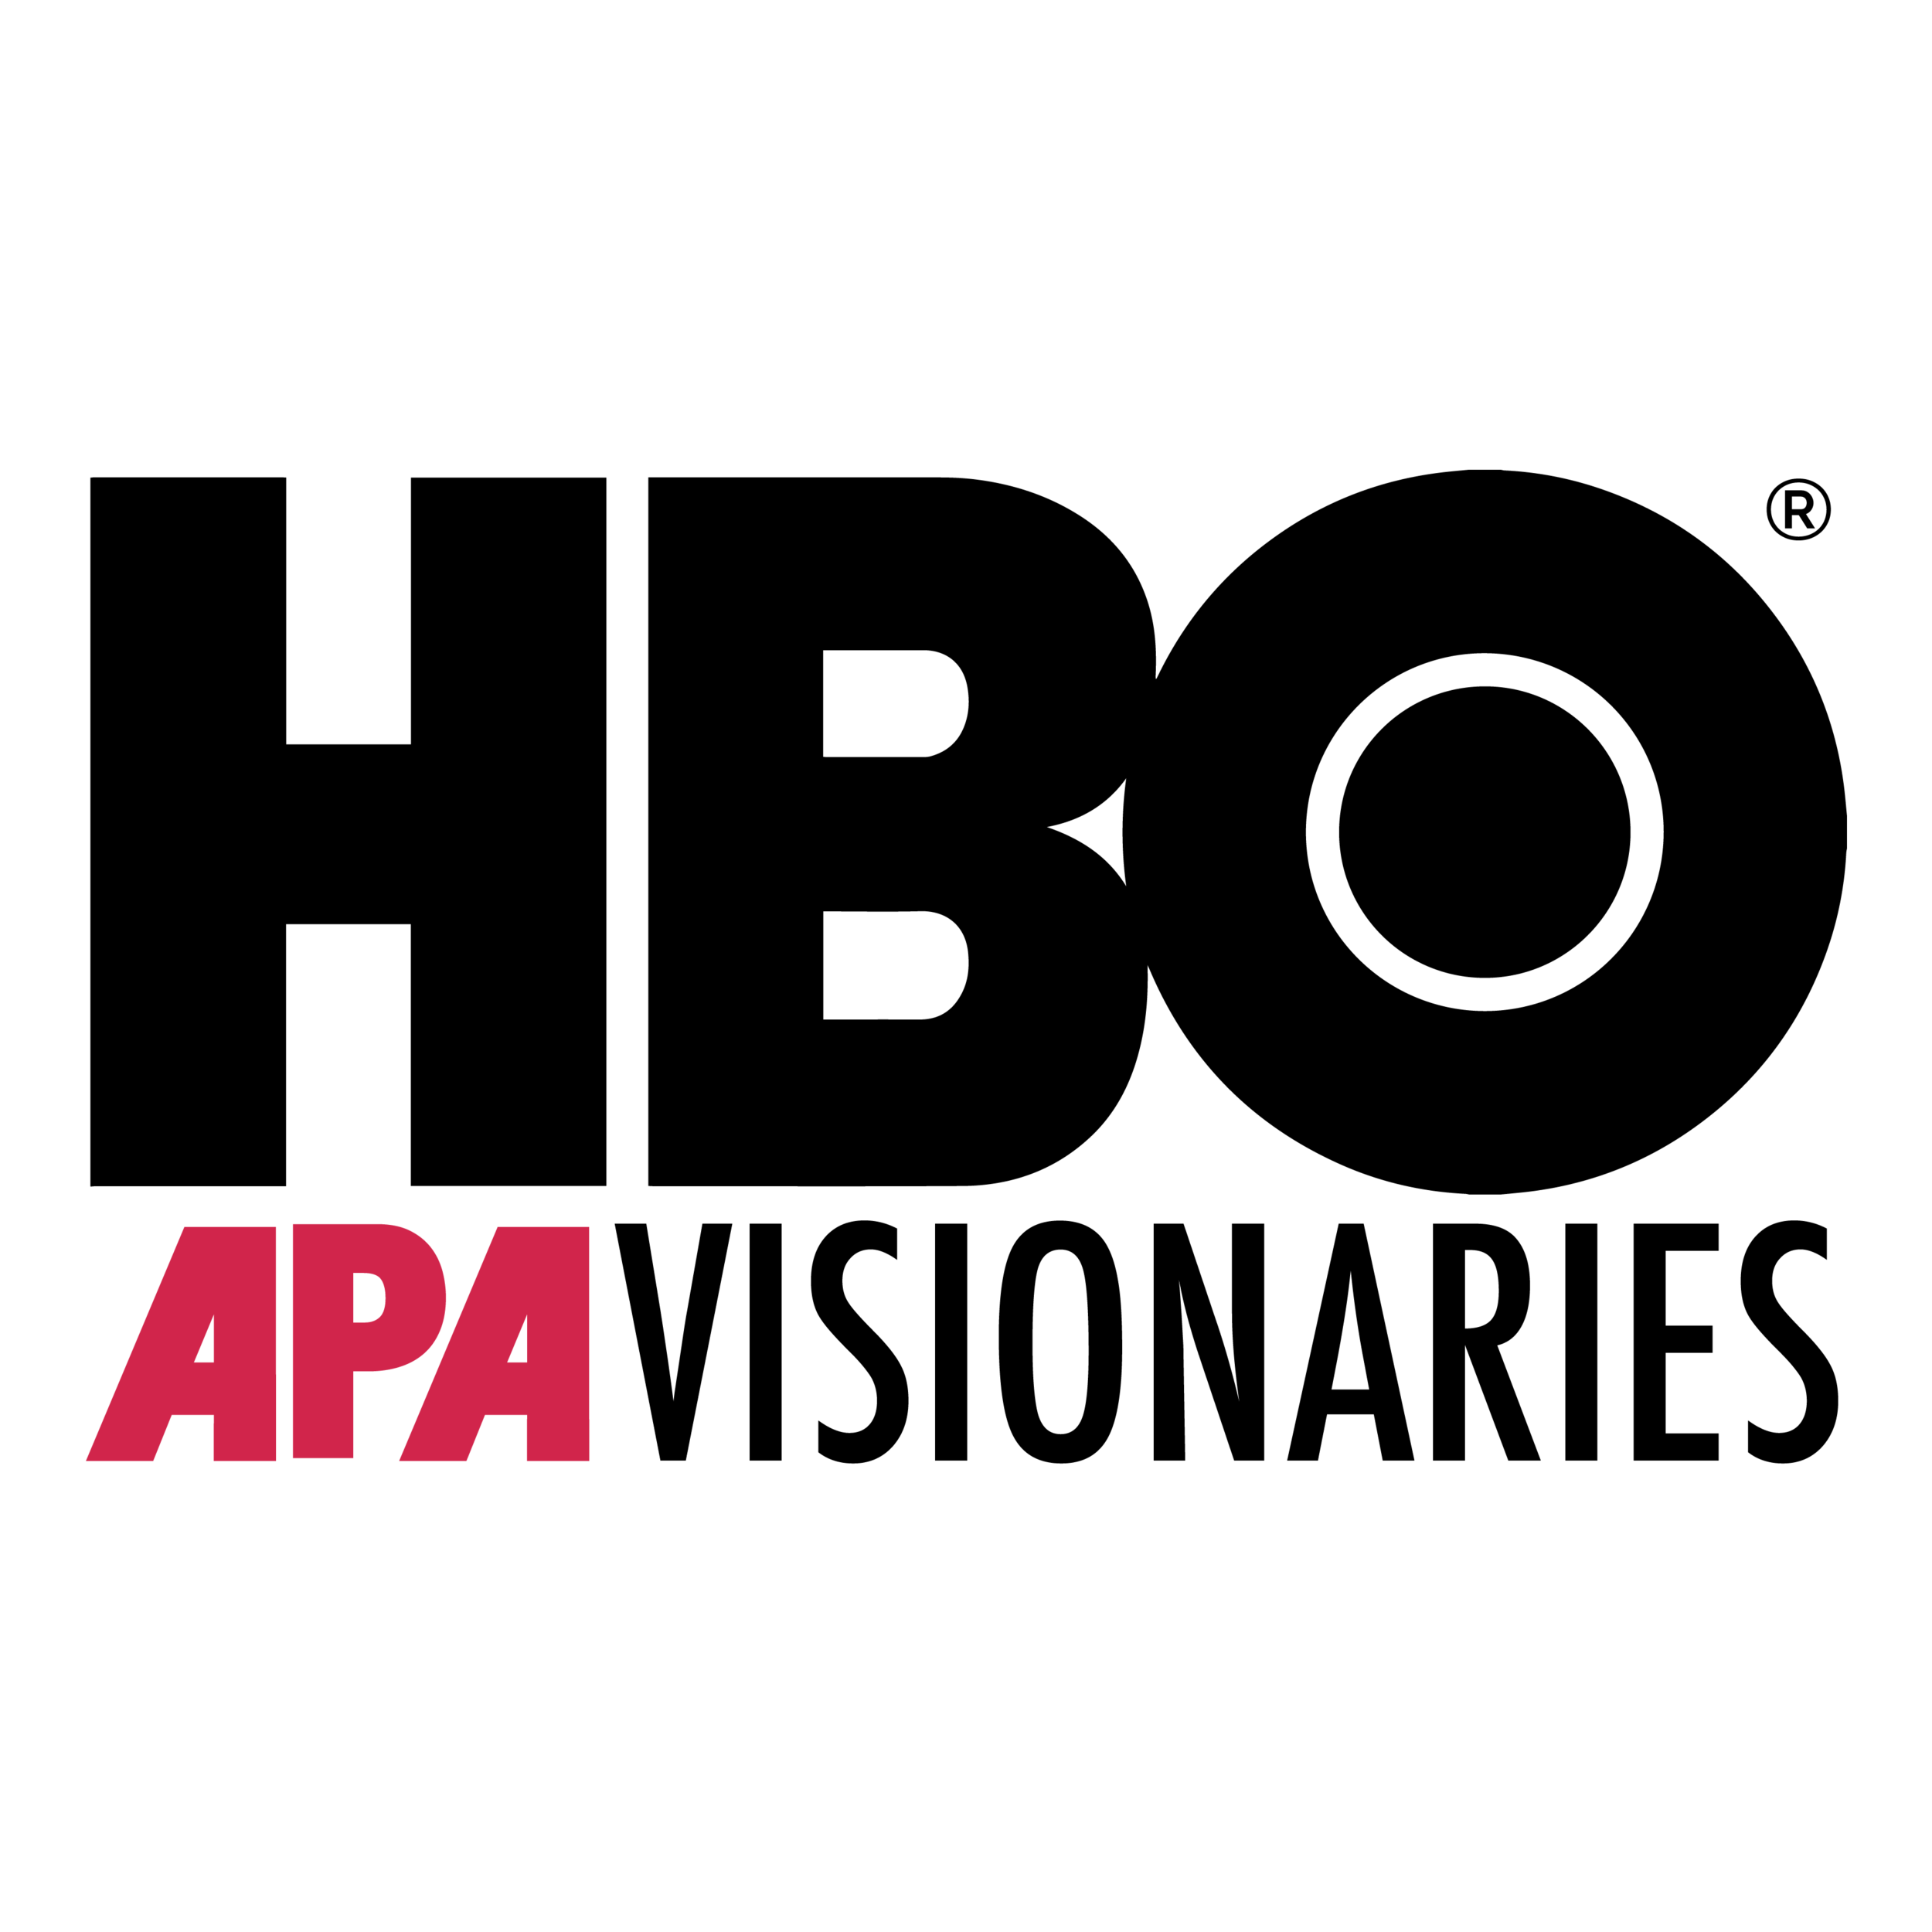 HBO_APA-logo-01sq.png